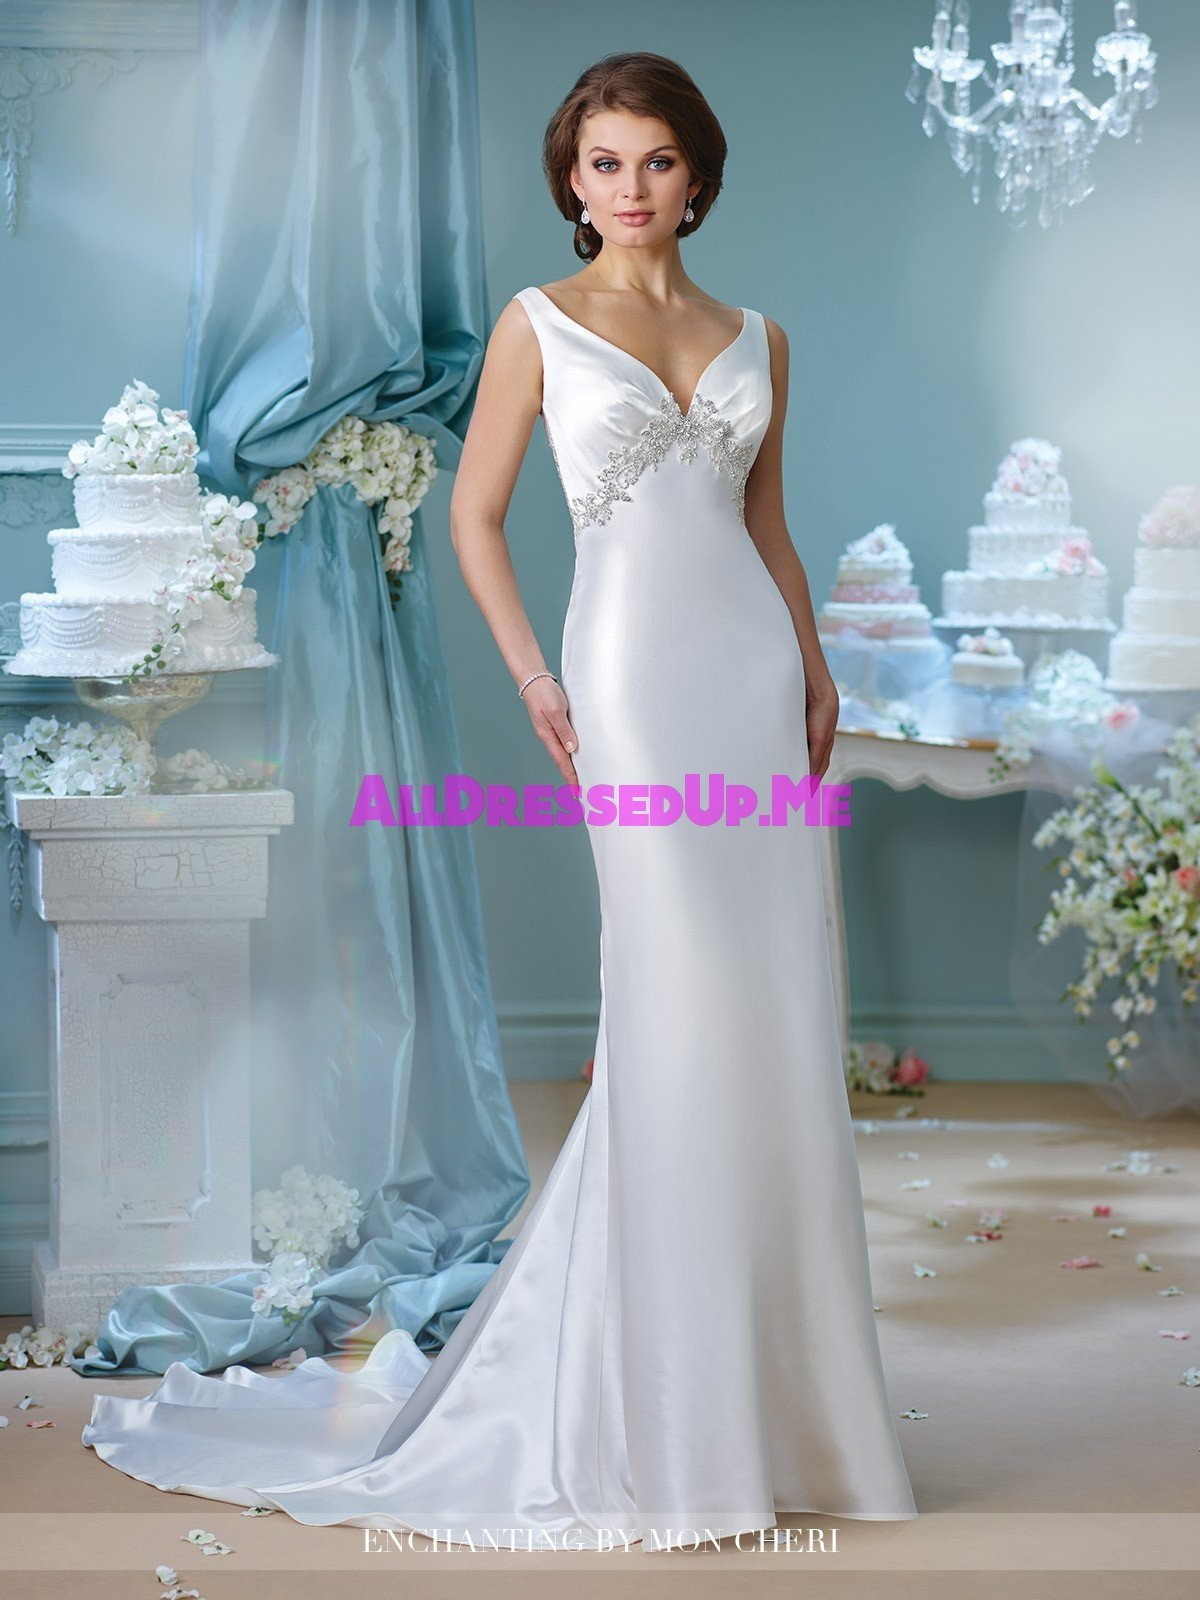 Enchanting - 216165 - All Dressed Up, Bridal Gown - All Dressed Up ...